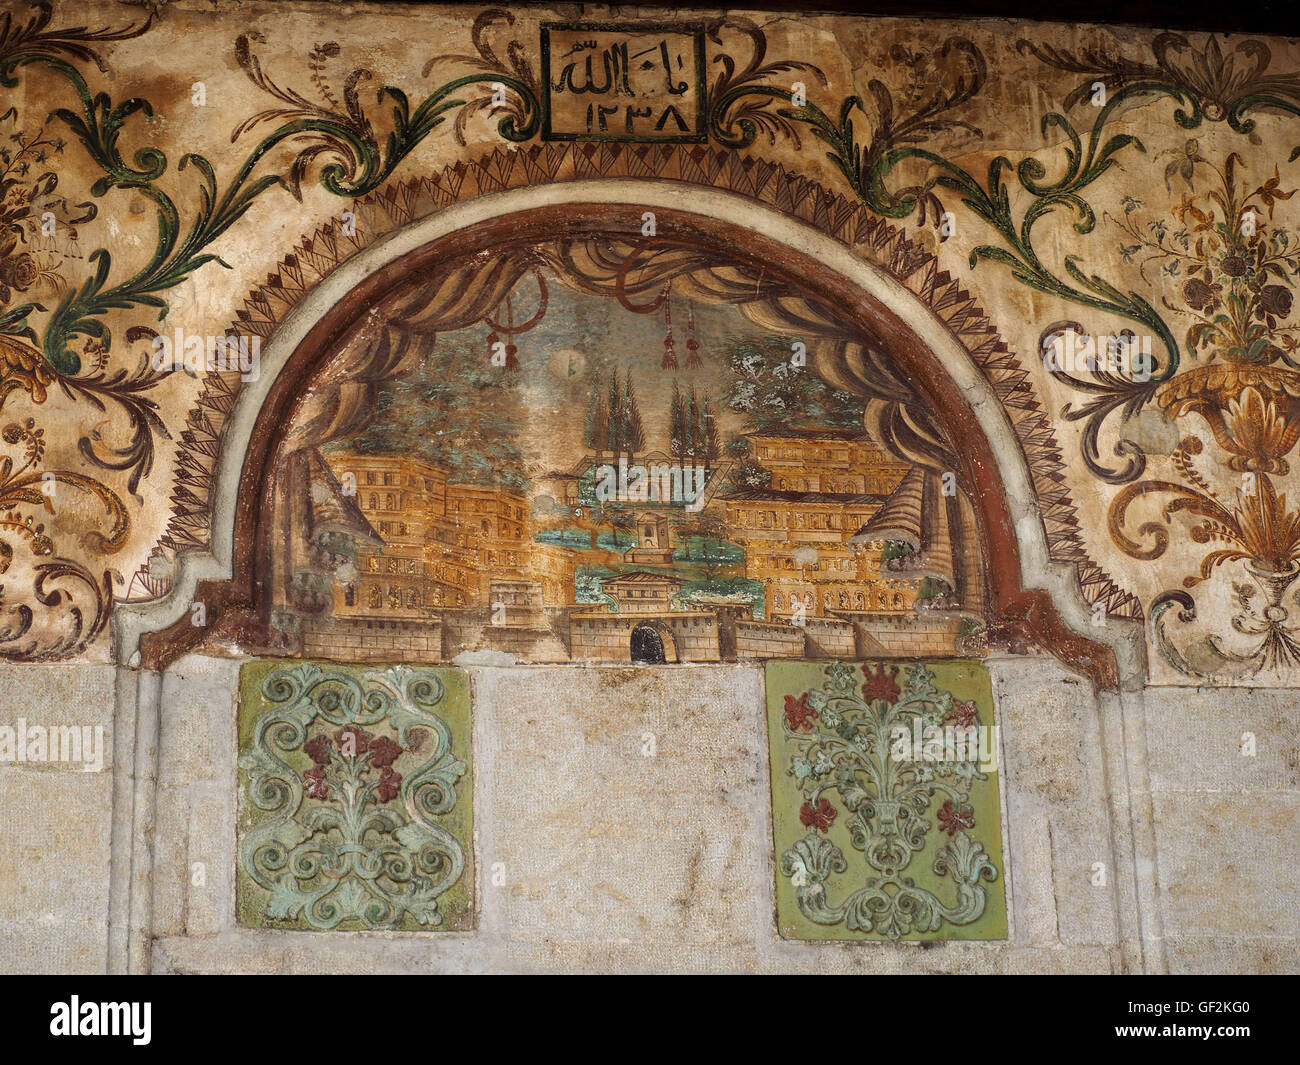 Ancient artwork at E'them Bey mosque in Albanian capital Tirana in the Balkans - Stock Image